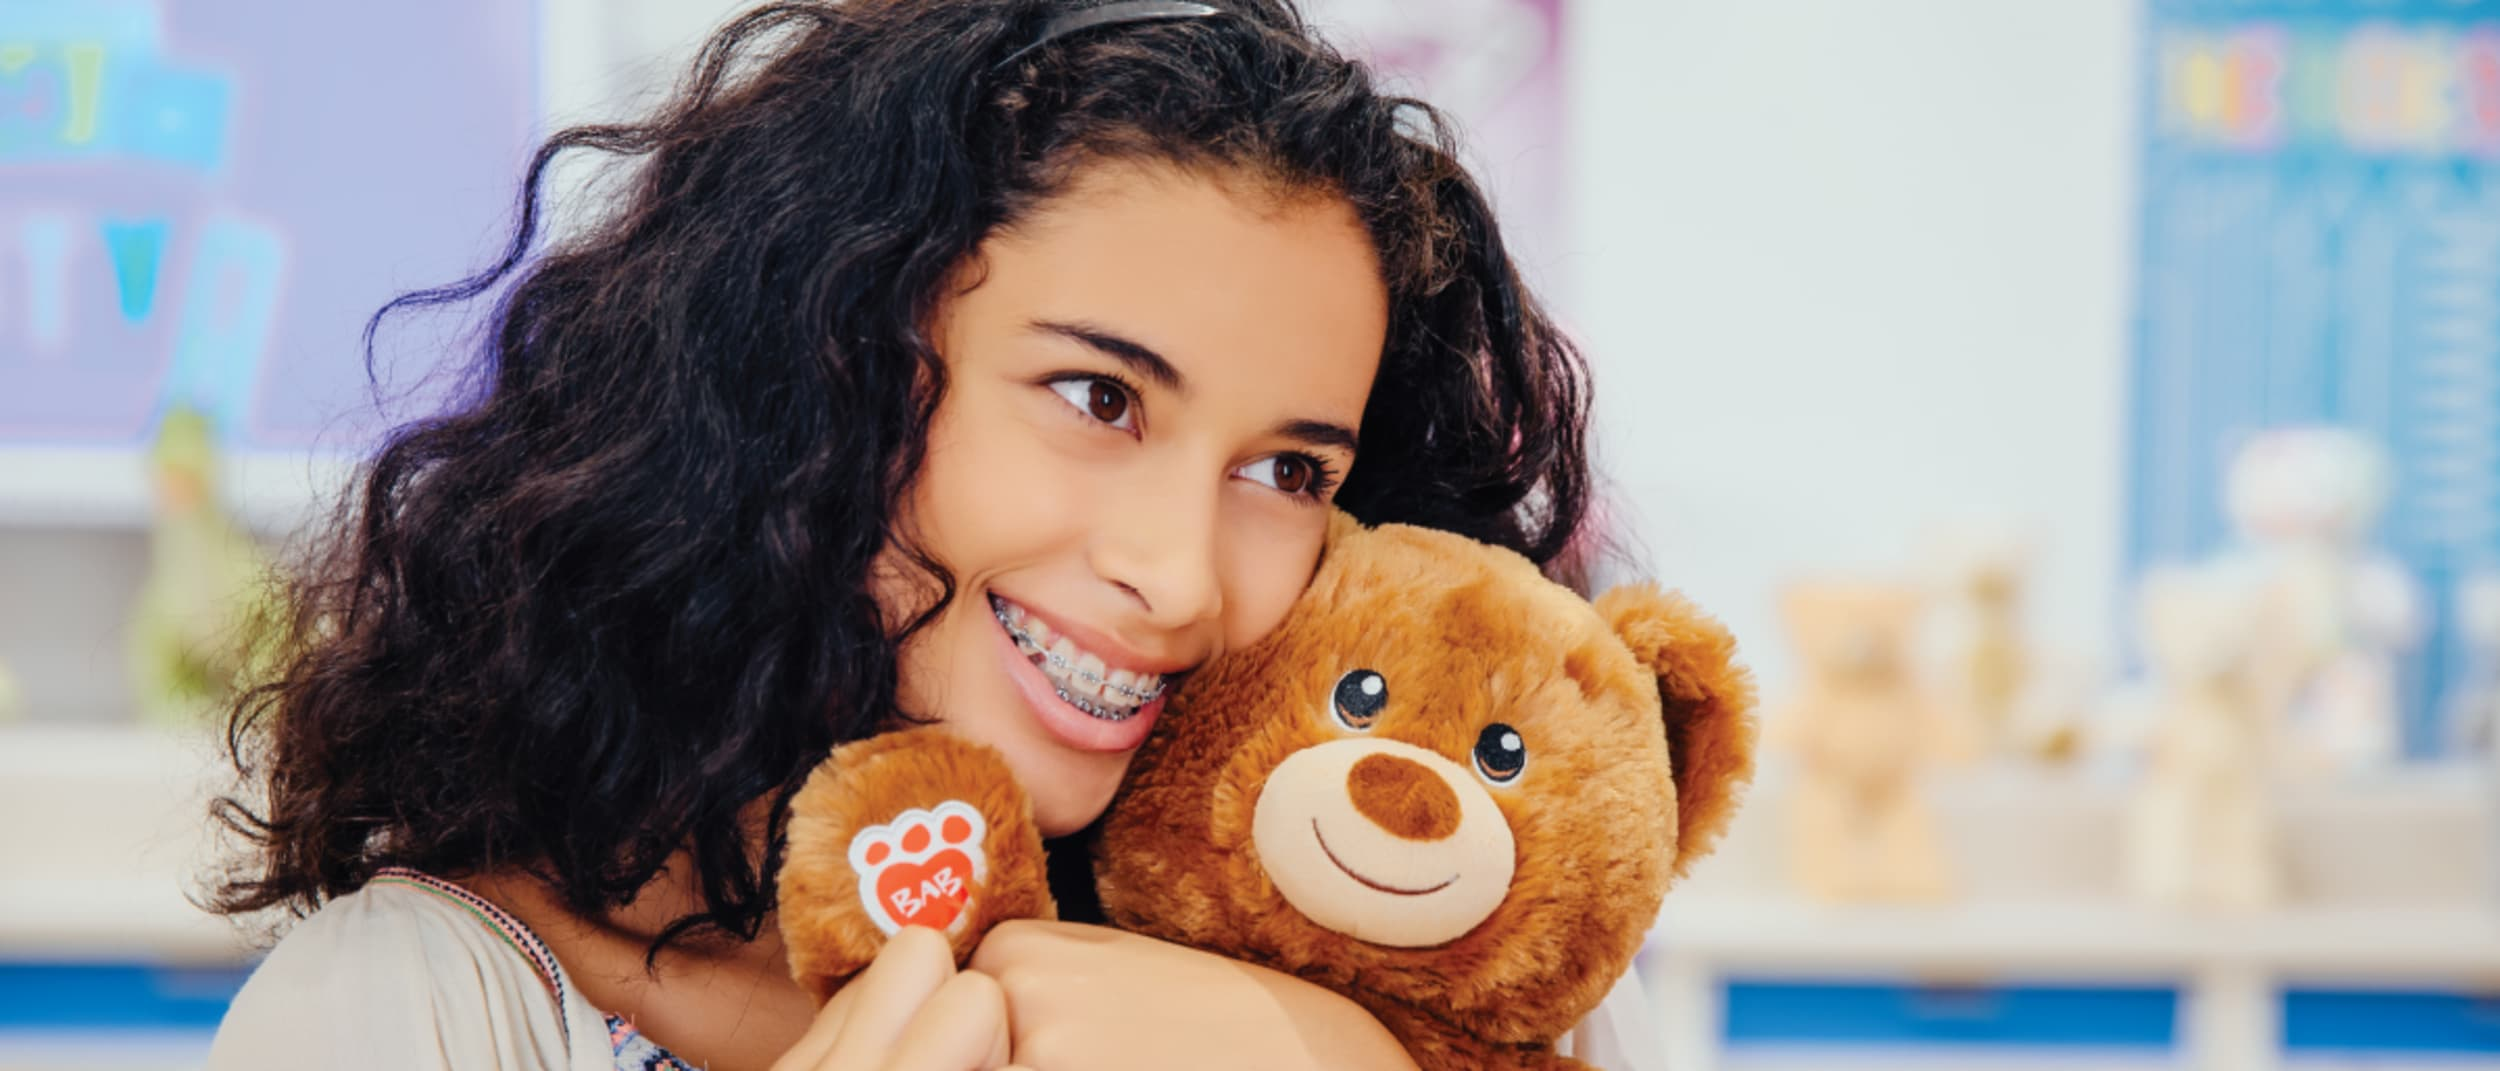 Build-A-Bear Workshop: Bearemy's Boxing Day bargains